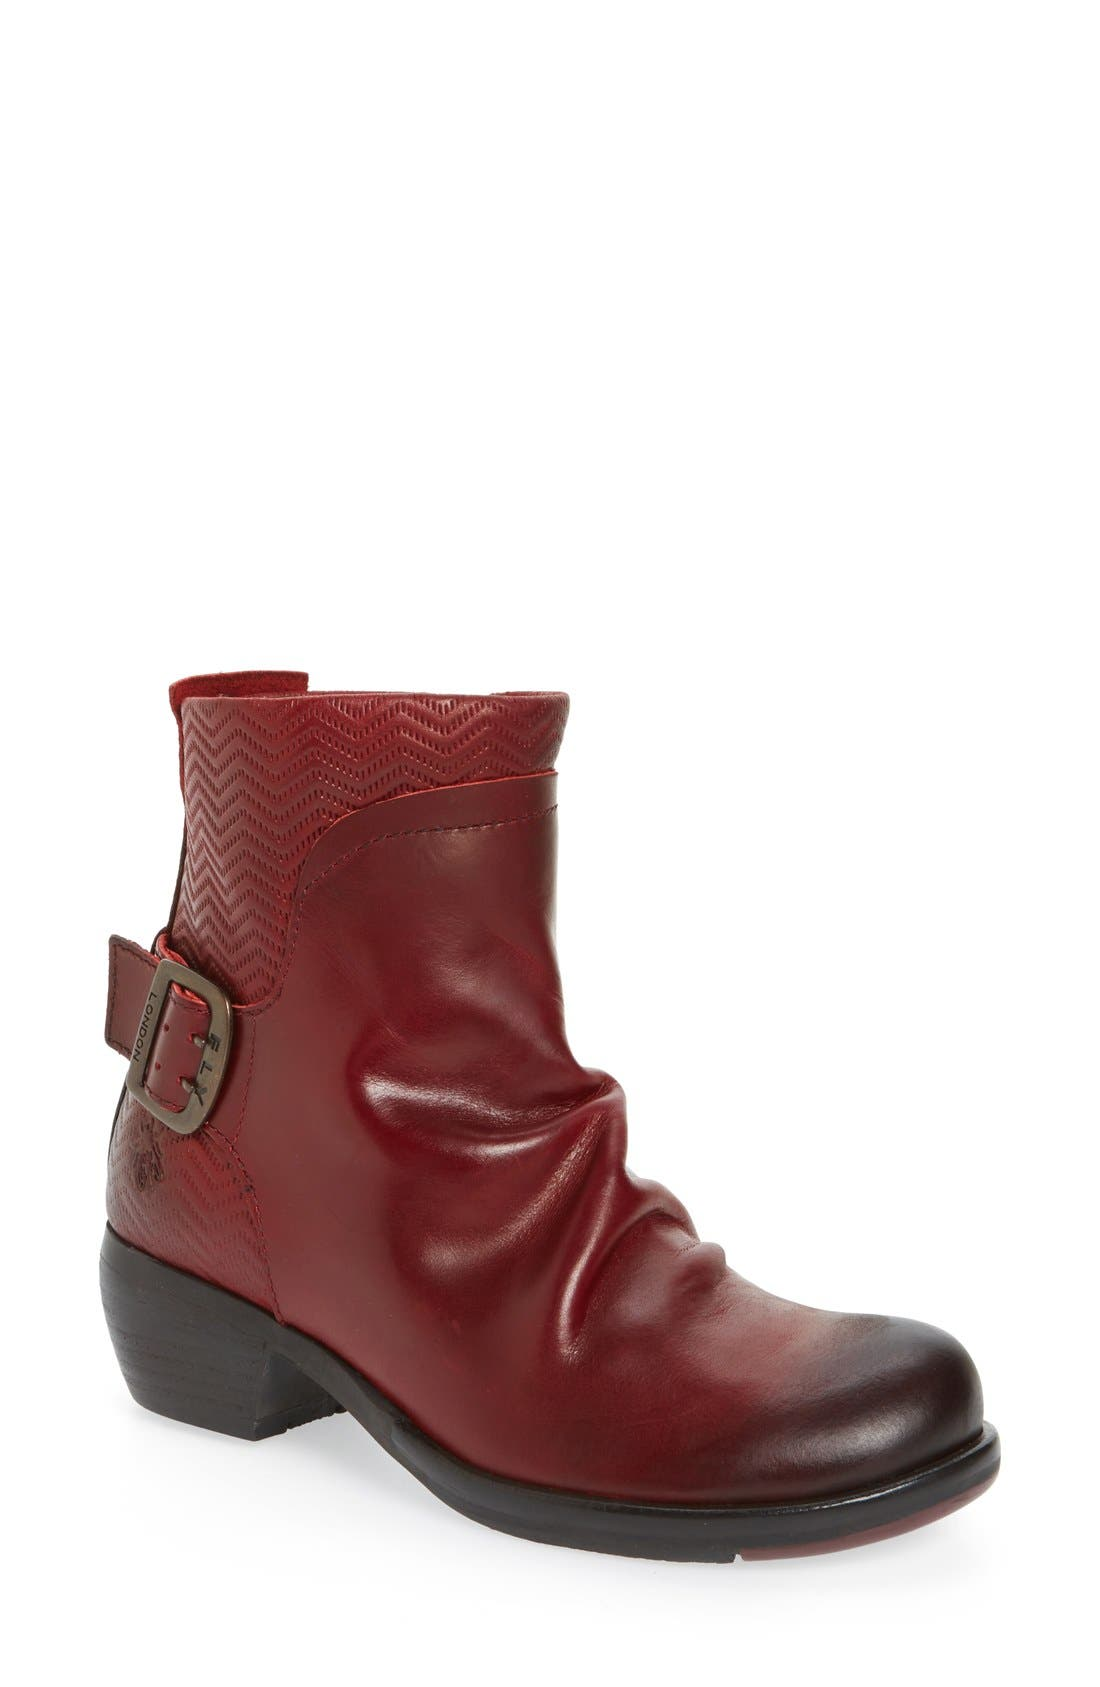 FLY LONDON 'Melb' Slouchy Buckle Strap Bootie